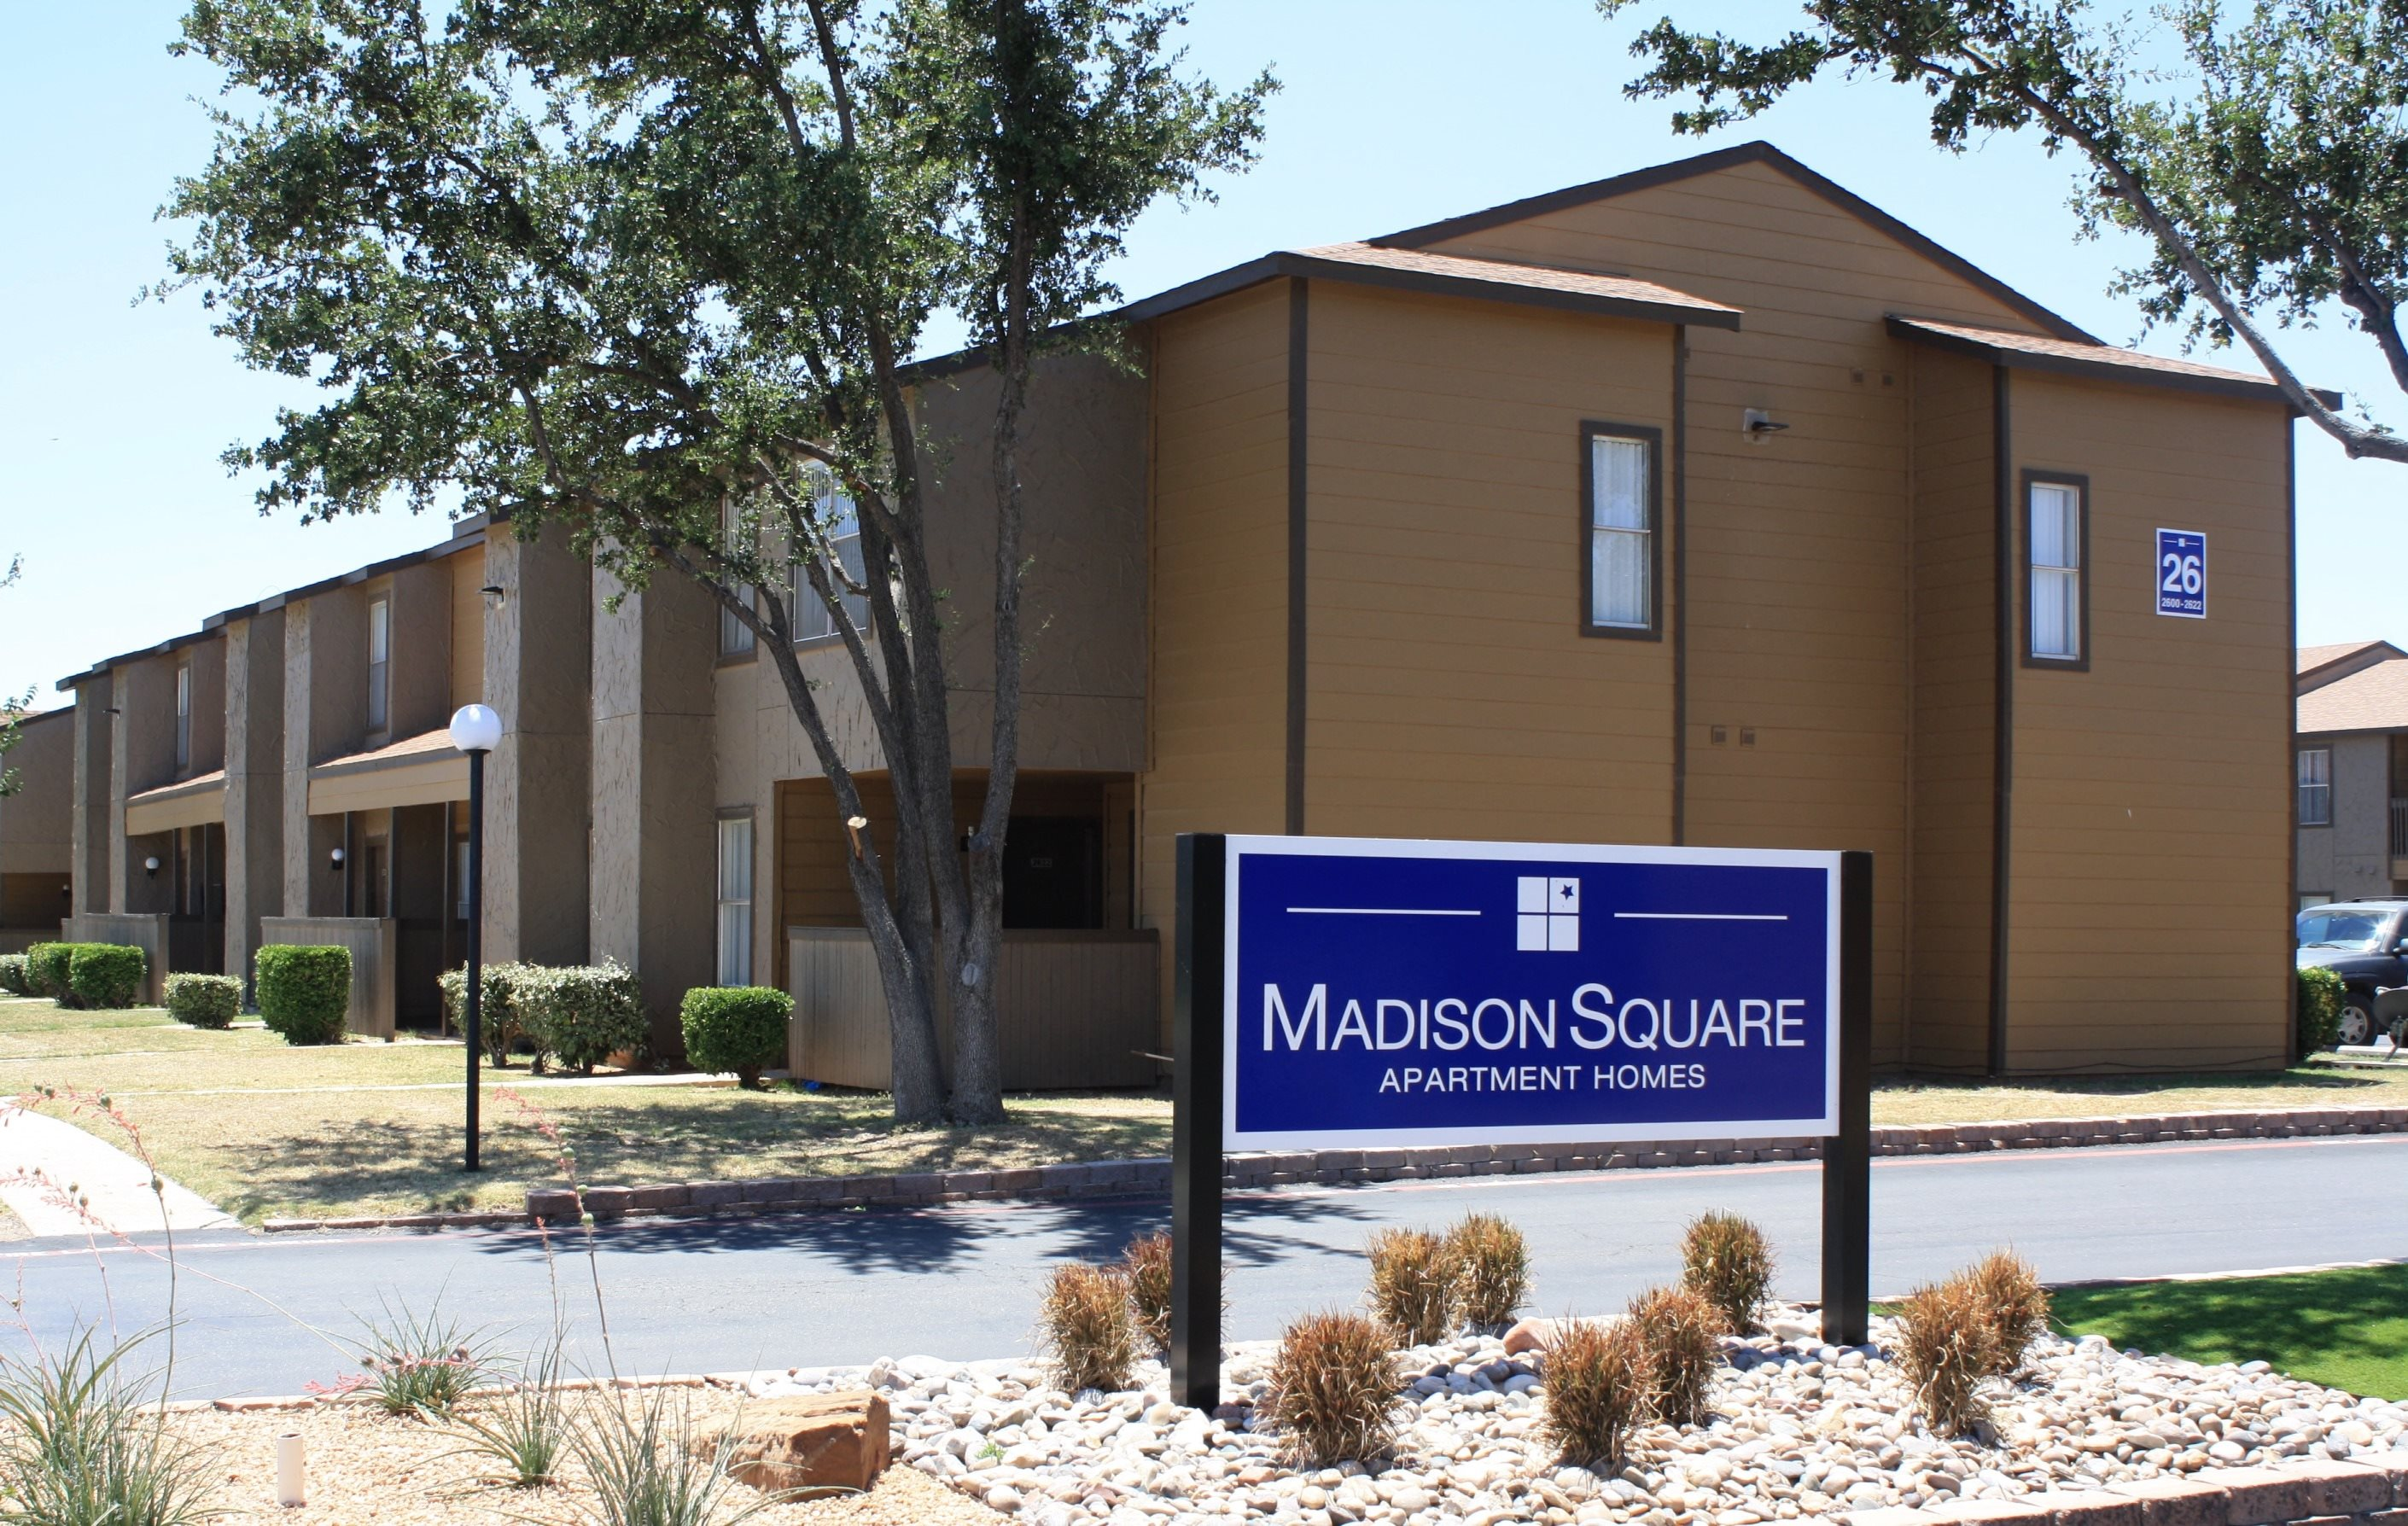 Photos and Video of Madison Square in Odessa, TX